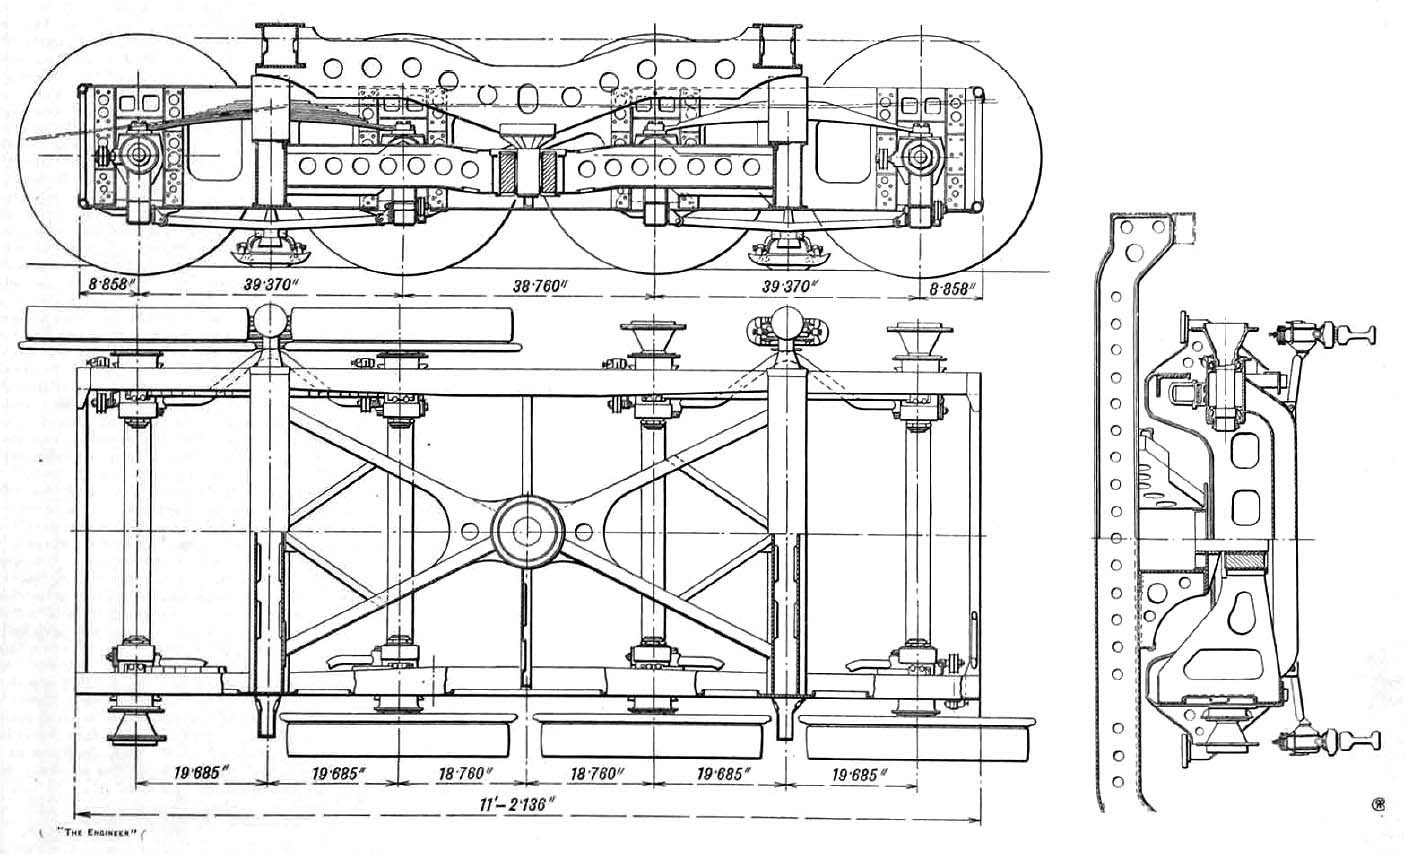 Plan Elevation Cross Section : Coventry station plan elevation and cross section of the